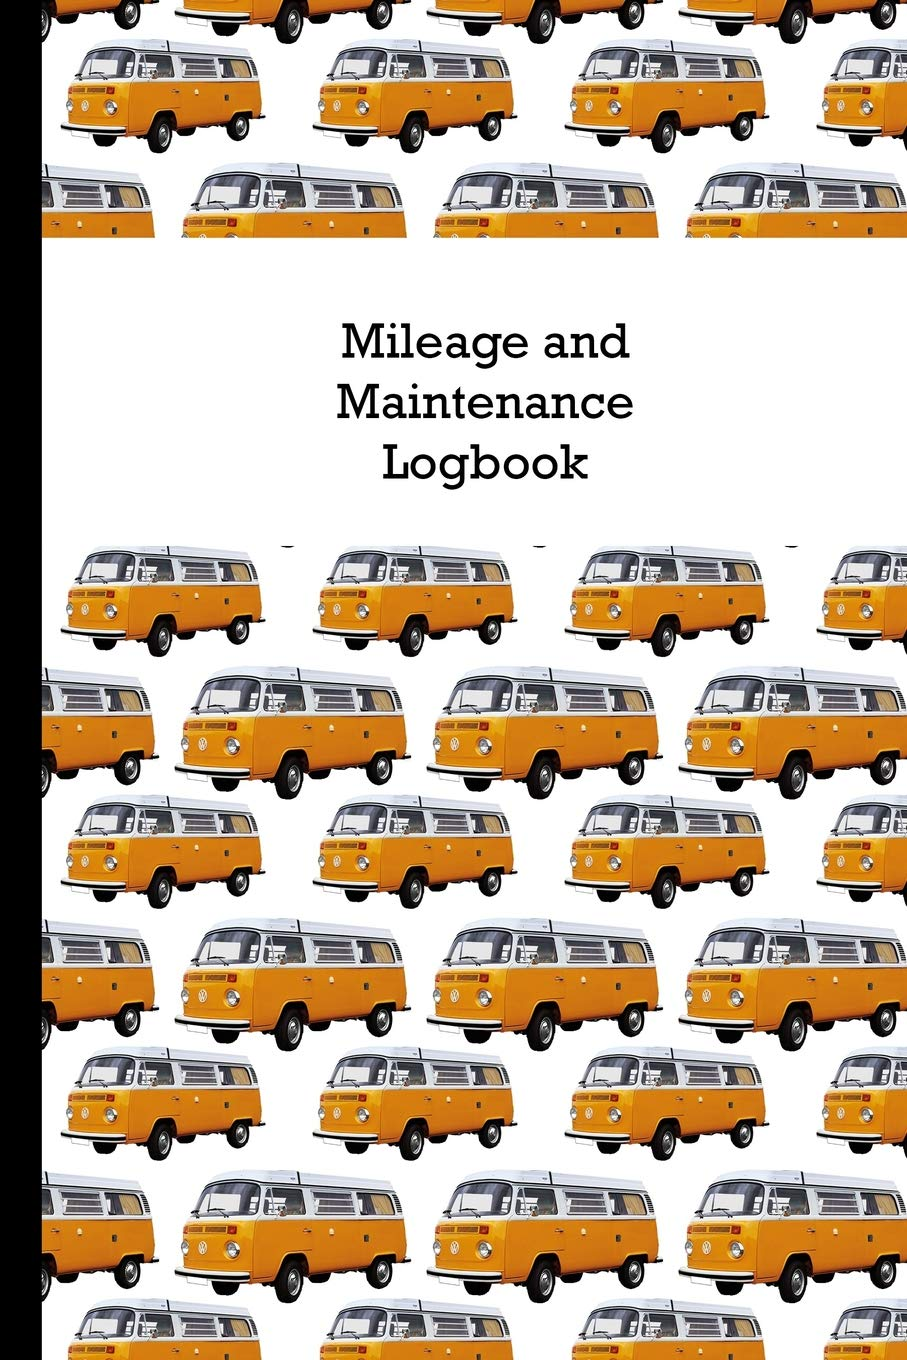 Mileage and Maintenance Logbook: Car Mileage Tracker and Business Vehicle Expense Book With Yellow VW Autobus por Sunny Days Prints